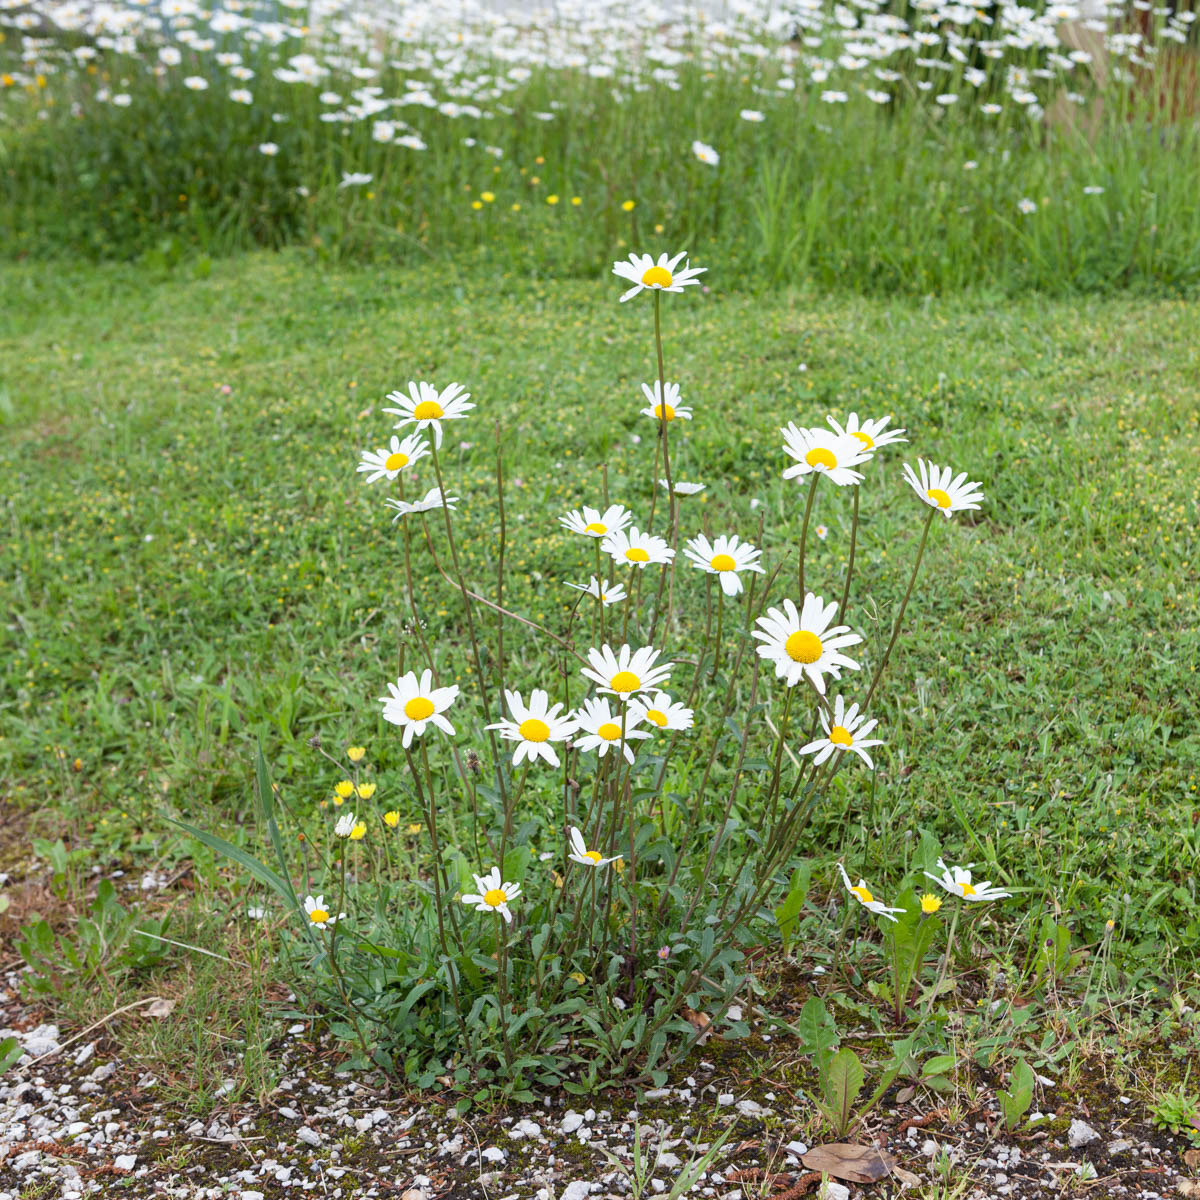 "The daisy - The daisy of Paul Feyer's garden. Plaffeien, June, 2012. - Copyright © © S. Borcard - N. Metraux - Planfayon / Plaffeien - Fribourg - Switzerland - <A href=""https://maps.google.com/?ll=46.741653,7.287395&z=16"" target=""_blank"">(Map The daisy)</A>"